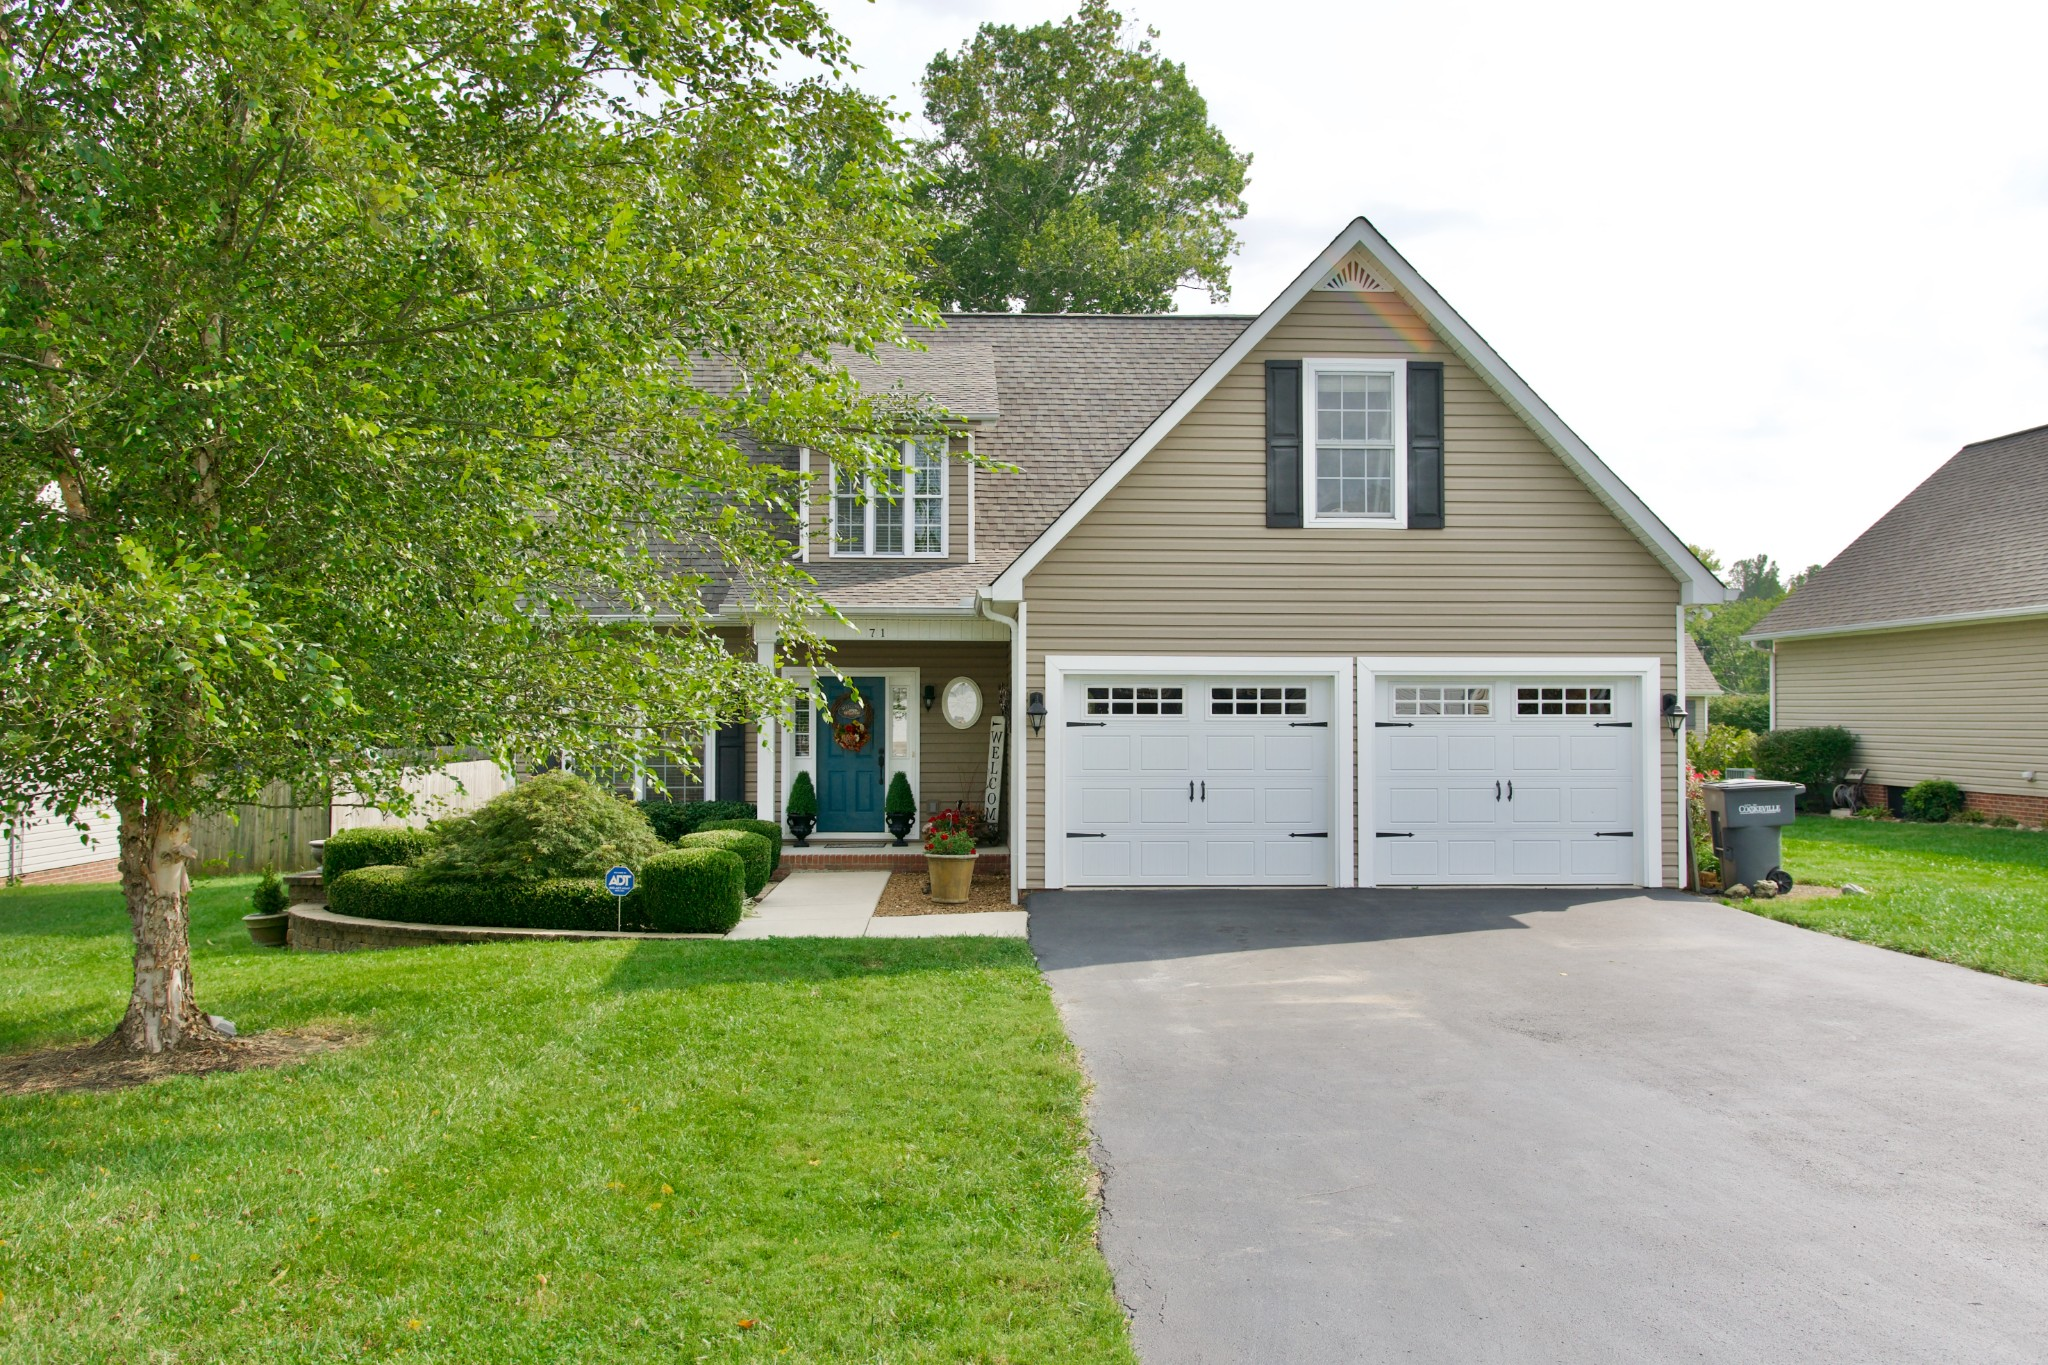 71 McKinley St Property Photo - Cookeville, TN real estate listing